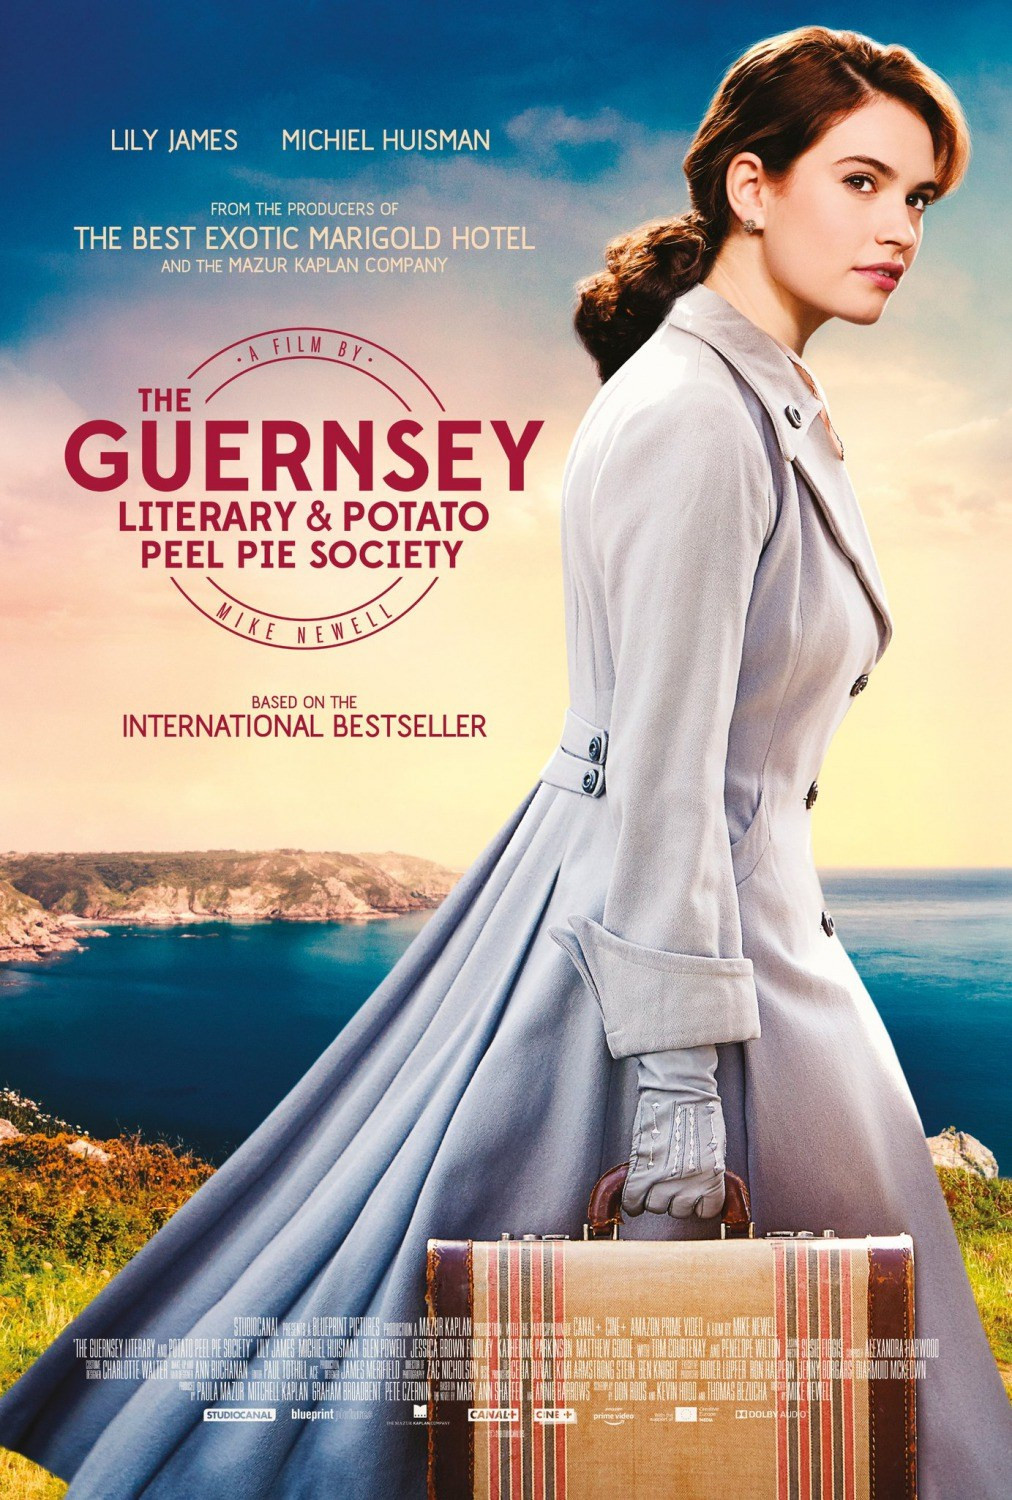 The Guernsey Literary And Potato Peel Pie Society Book  The Guernsey Literary and Potato Peel Pie Society Teaser